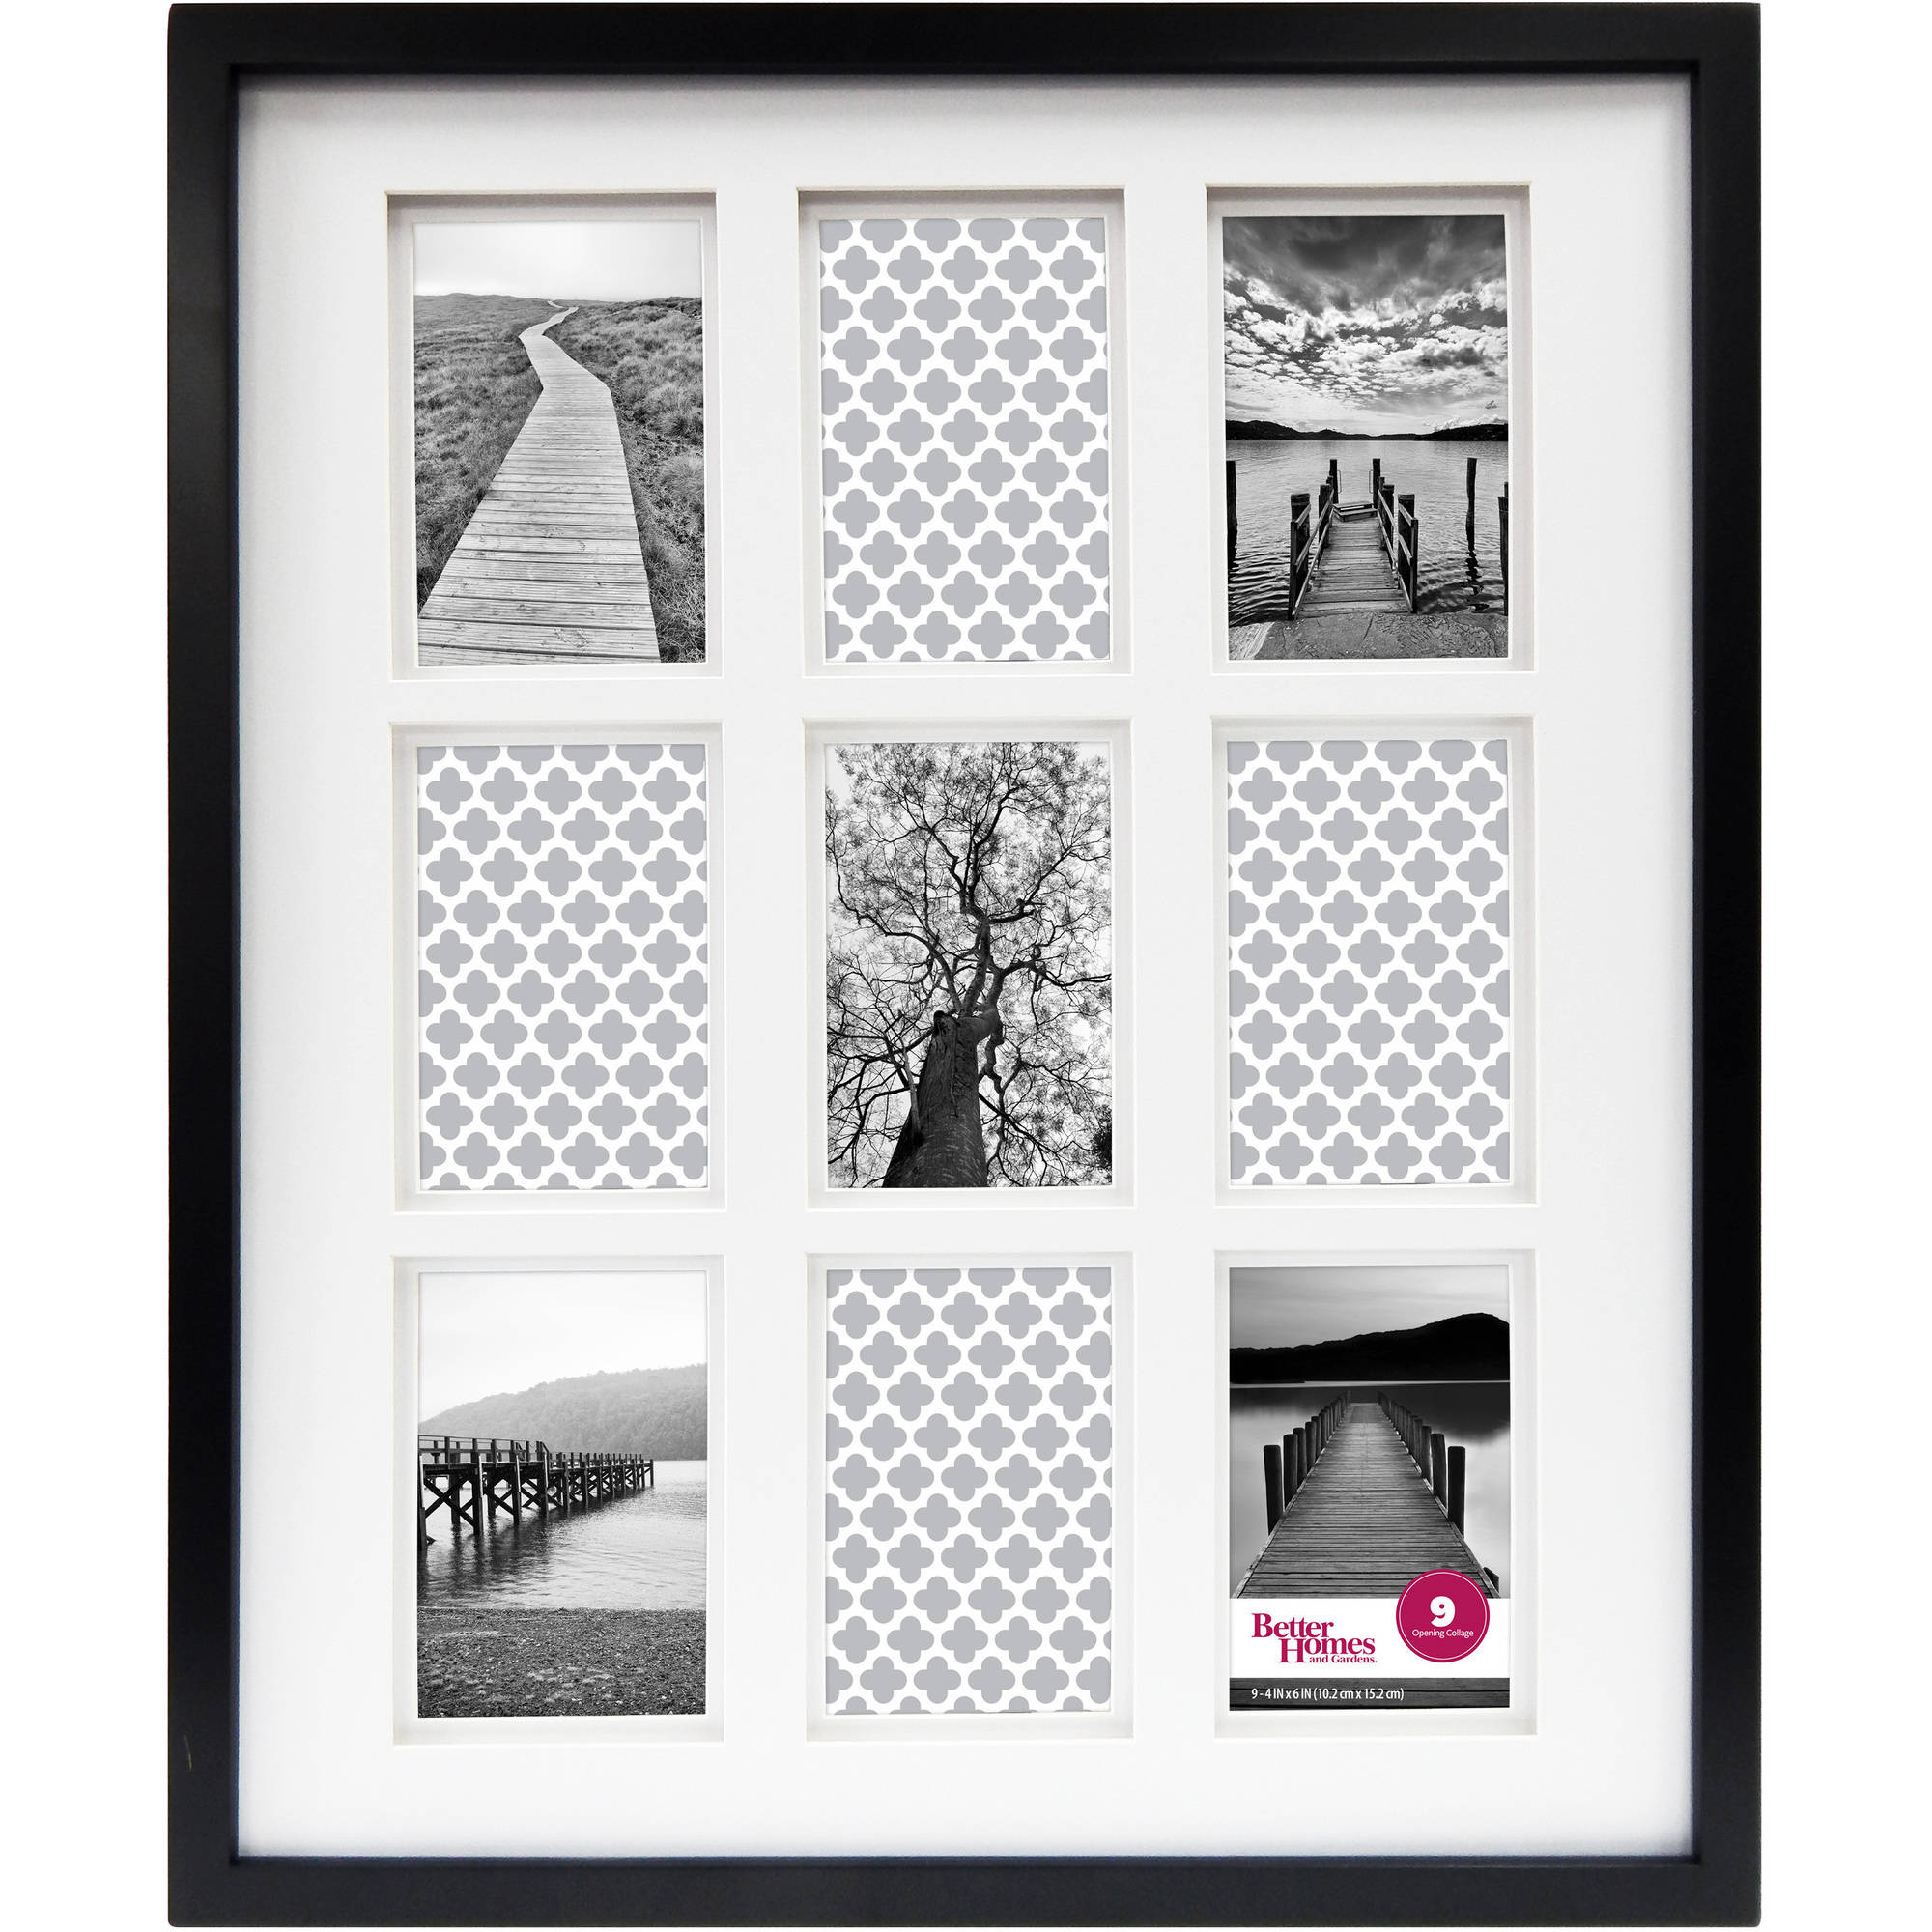 Better Homes & Gardens 9-Opening Thin Gallery Frame, Black